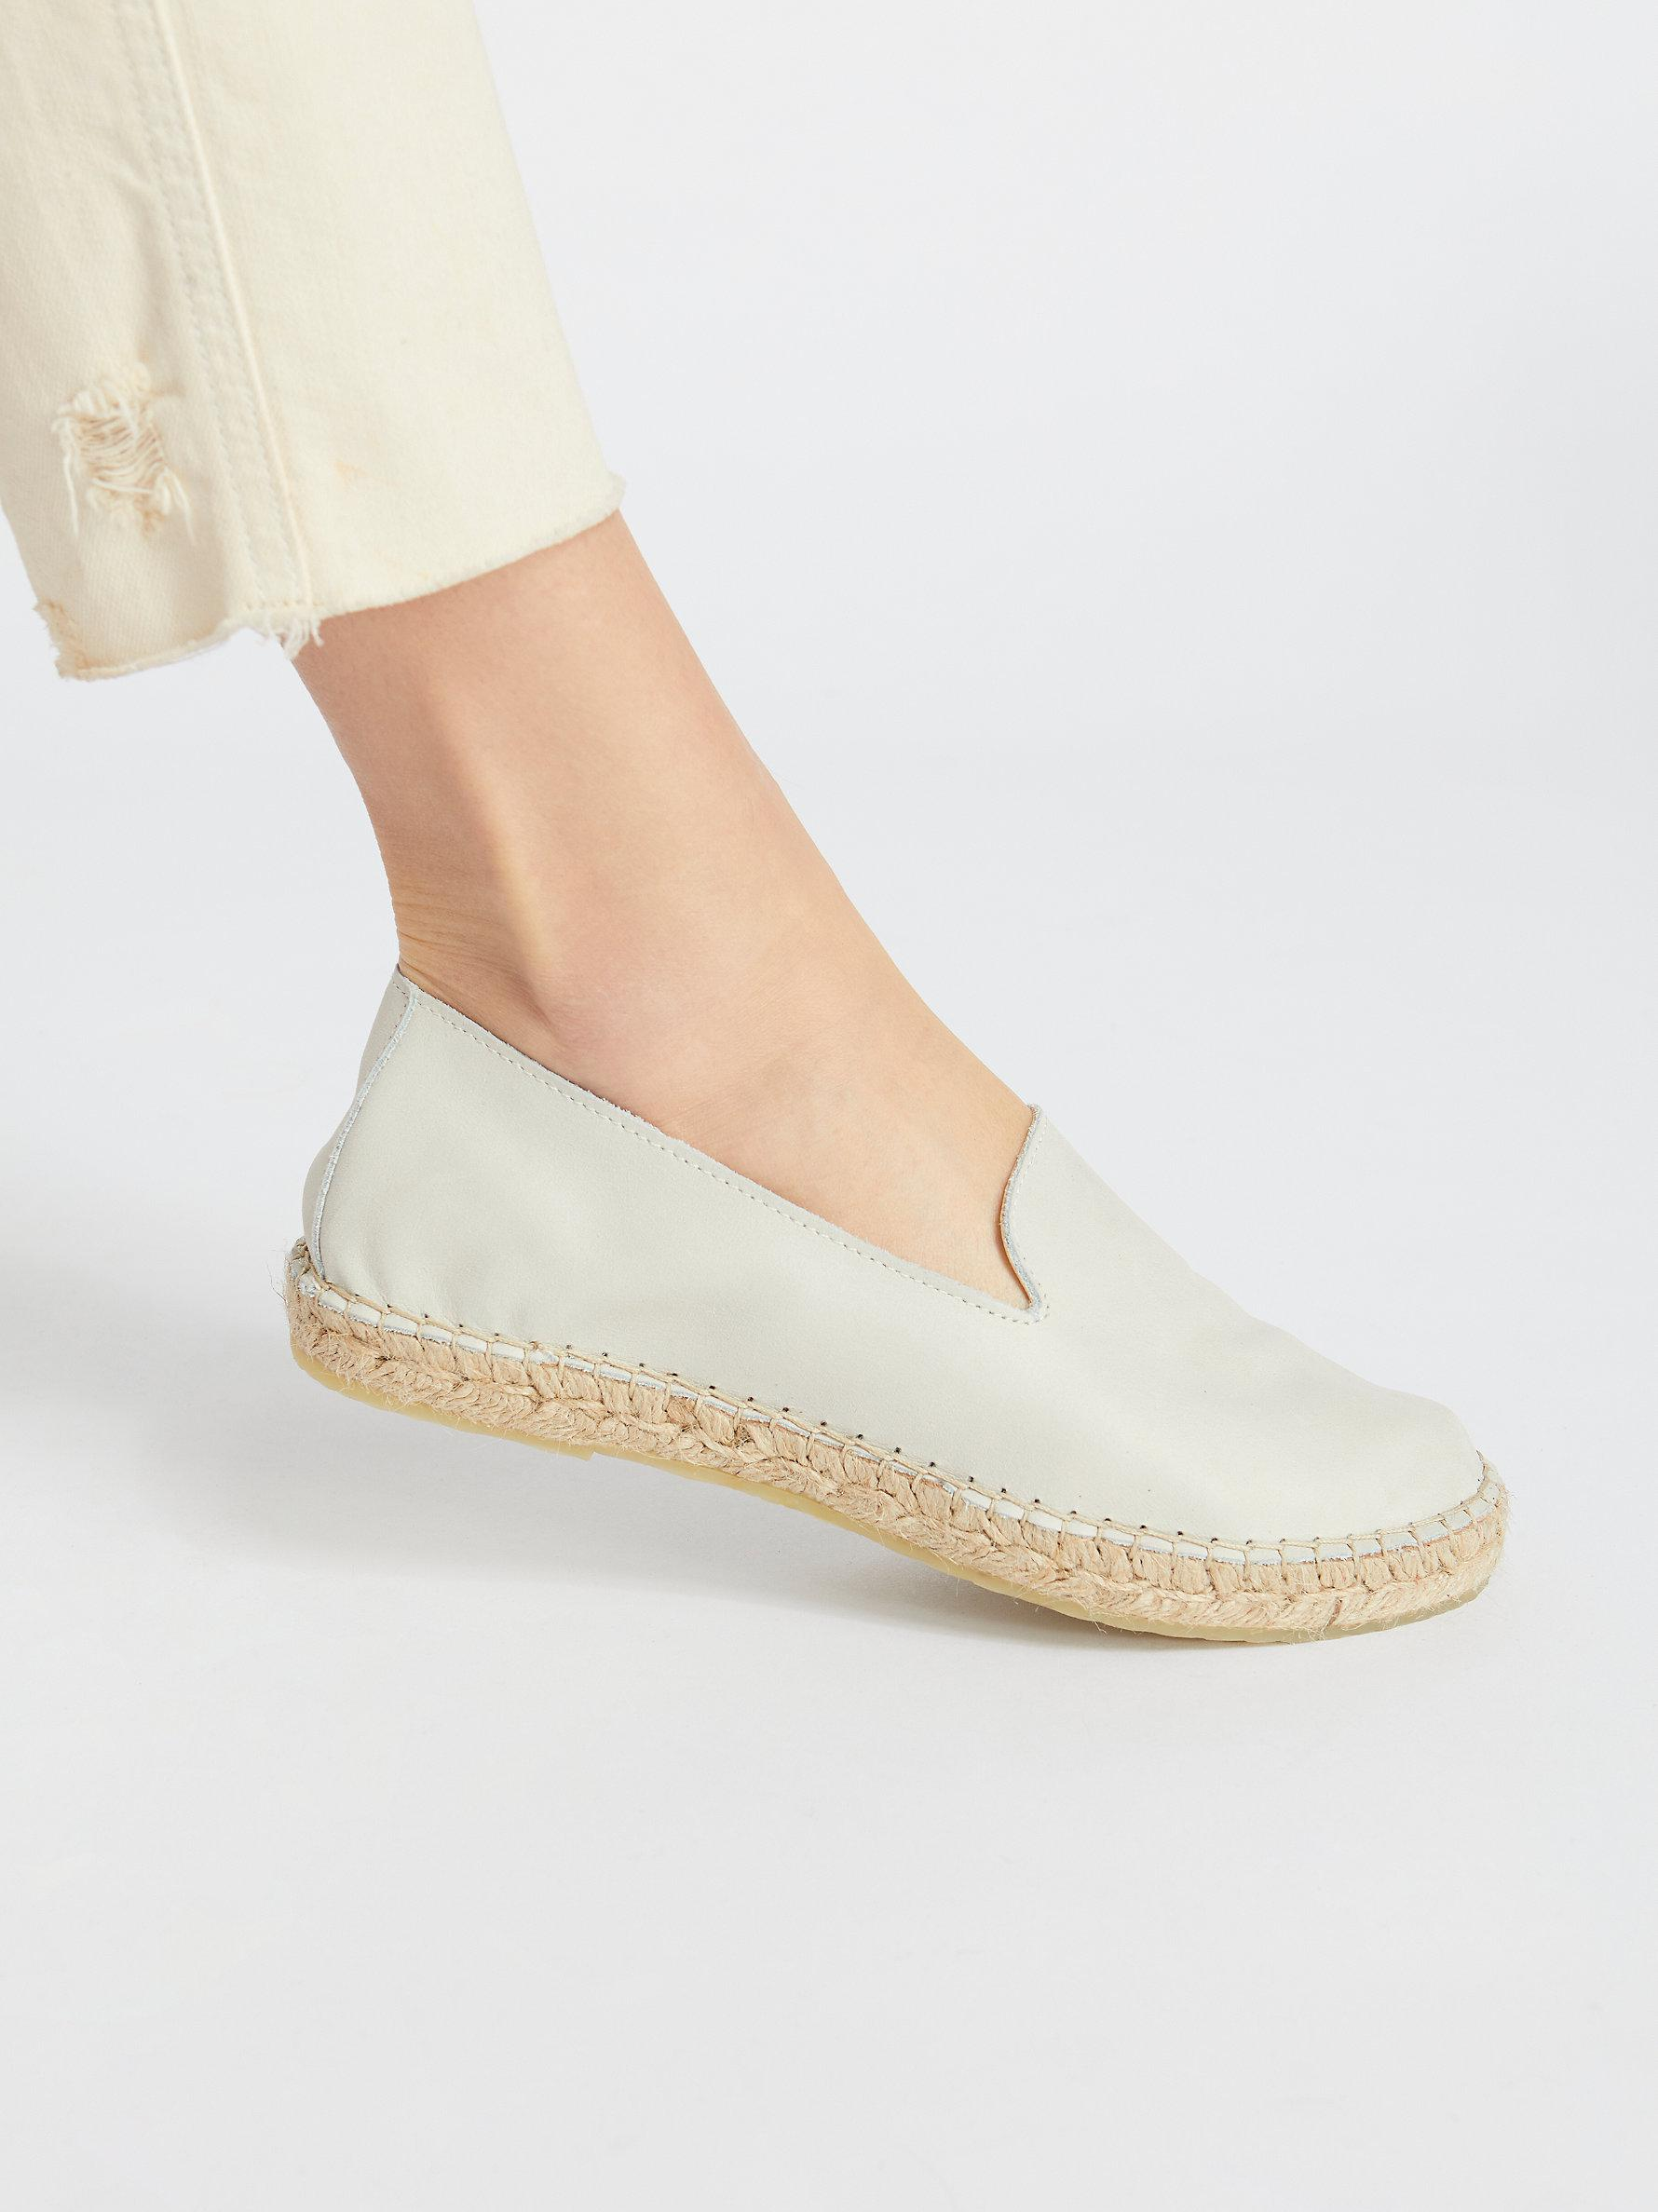 Free People Women's Laurel Canyon Espadrille Slip-On AiA76a